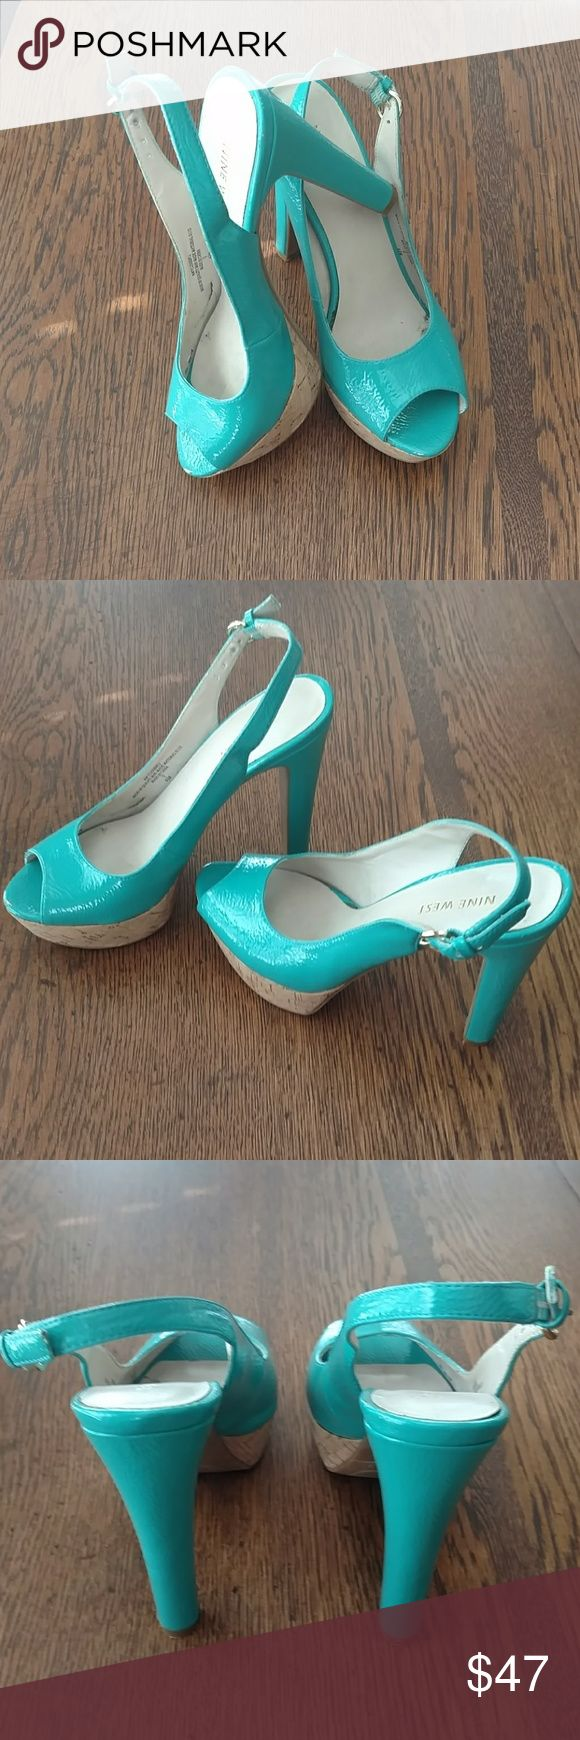 """Nine West """" Closer """" Slingback Platforms Very pretty!! Size 6.5 Turquoise color gold buckle, worn a couple of times. Adjustable back strap and ribber soles and on the bottom of the heels. Very comfortable. Great condition with just 1 minor scratches seen in the last photo. Easy fix. Nine West Shoes"""